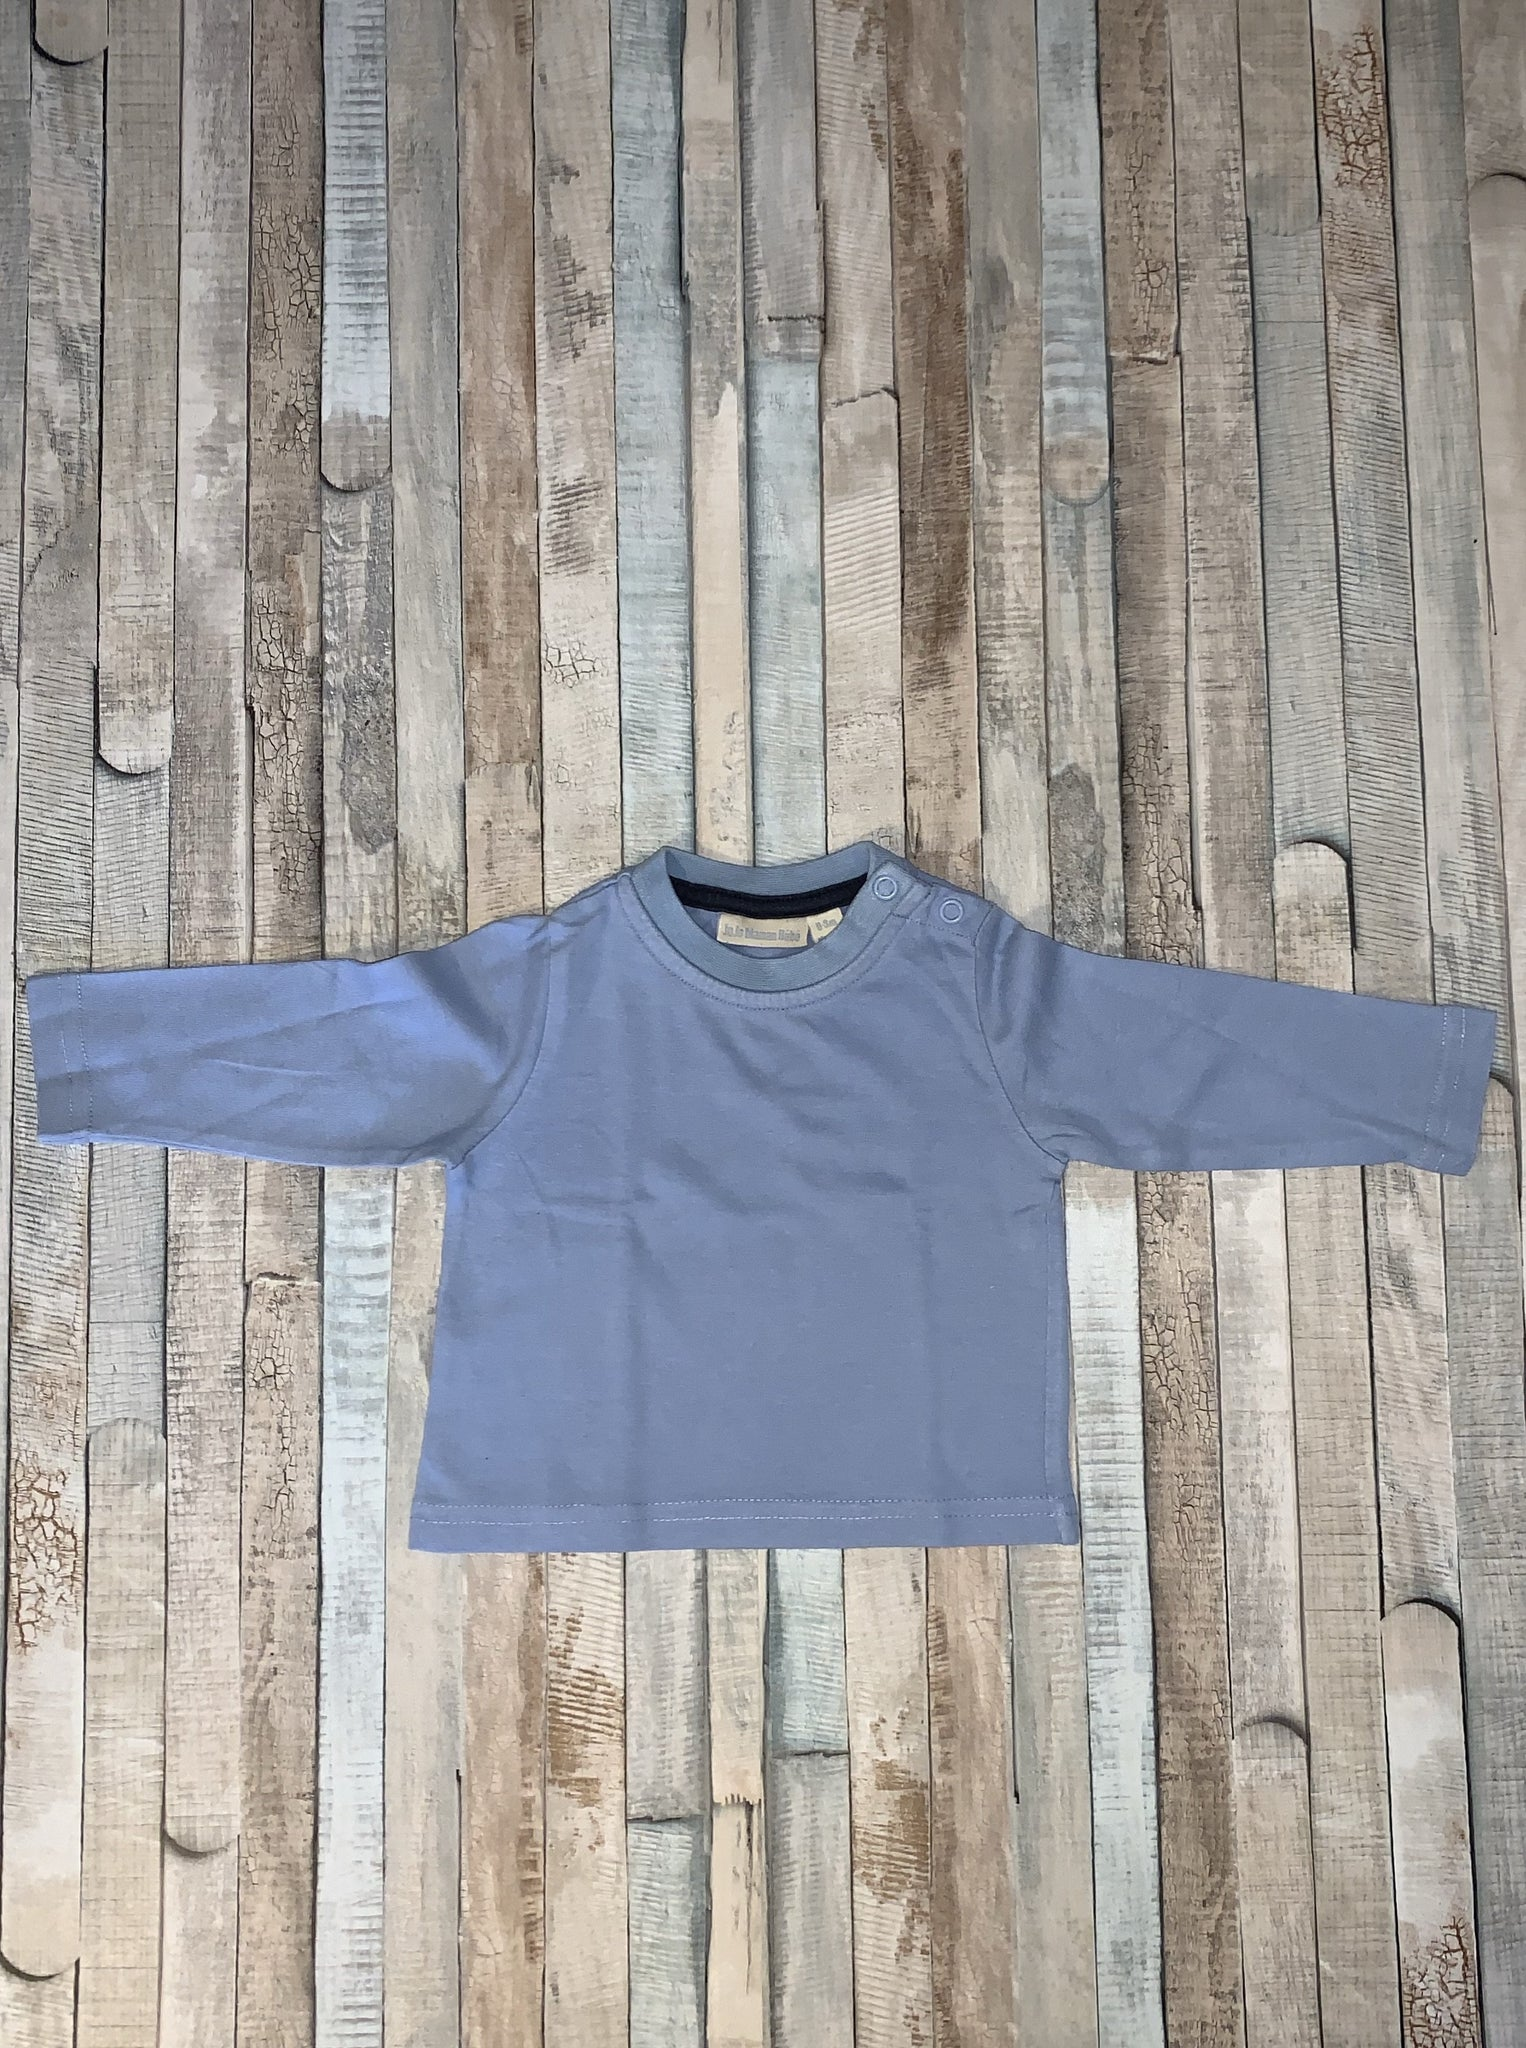 JoJo Maman Bébé blue long sleeve - Nippers Preloved children's clothing